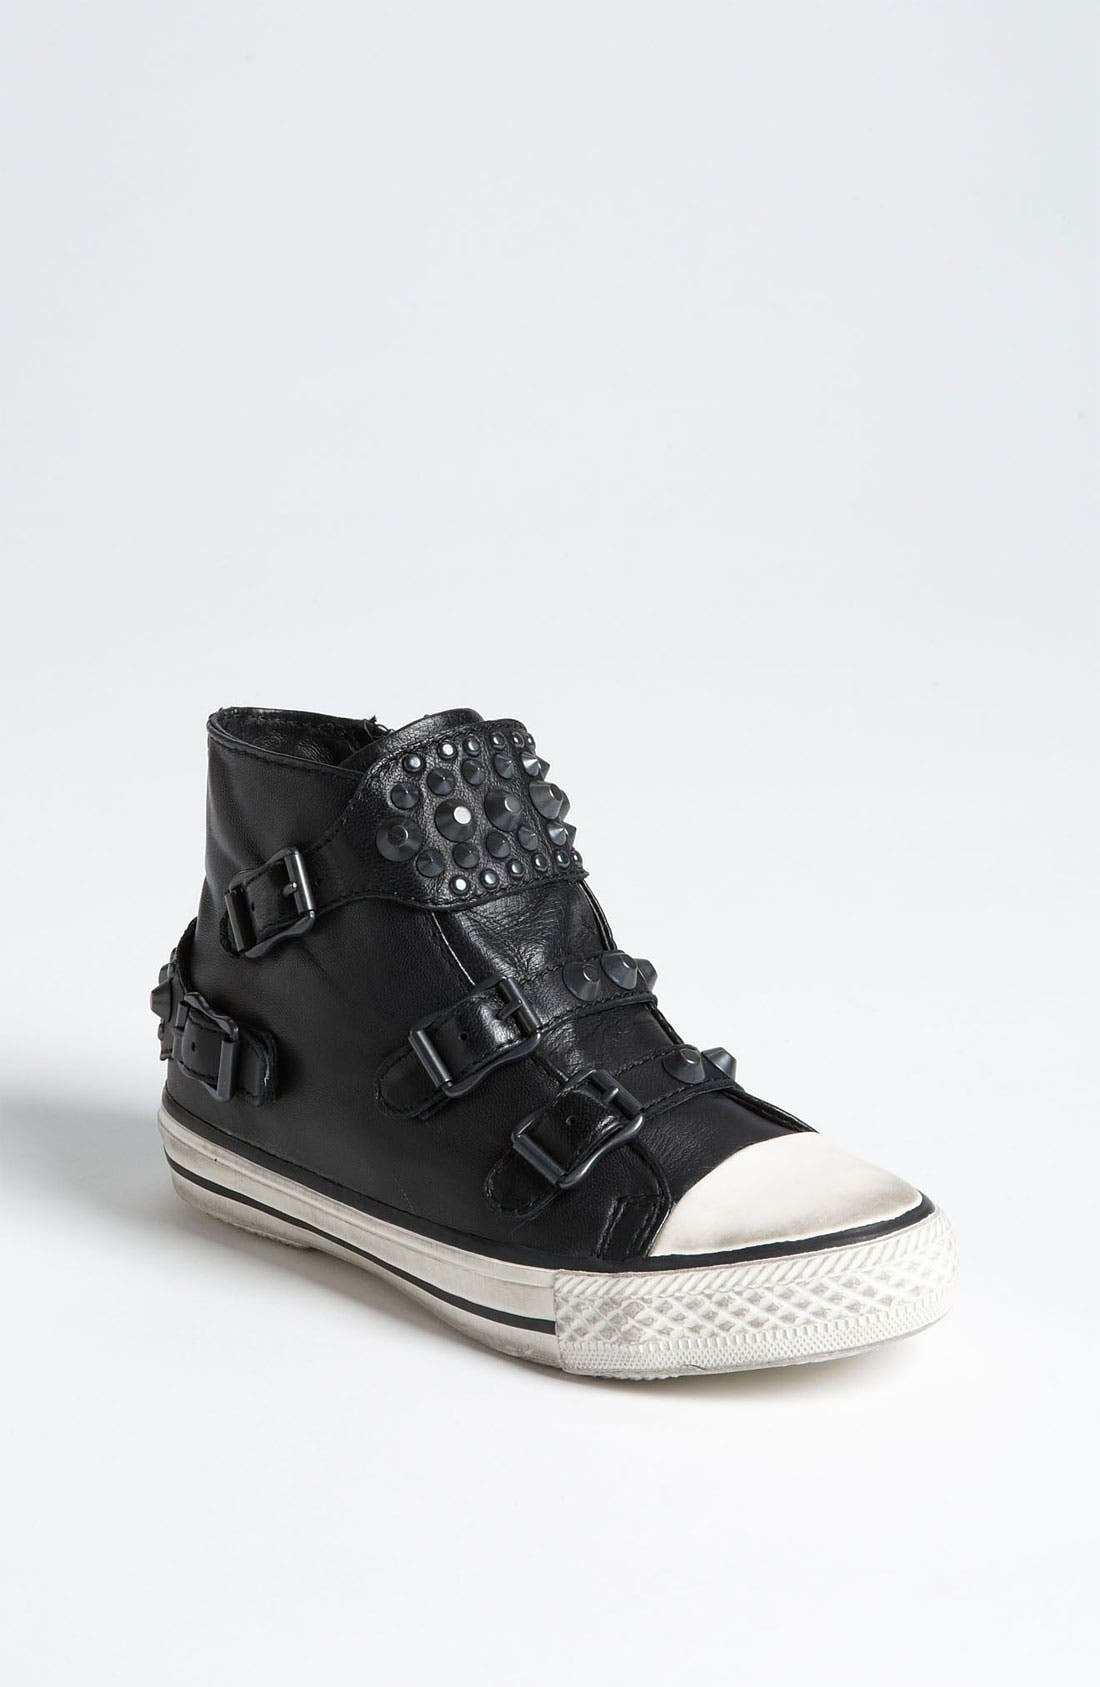 Alternate Image 1 Selected - Ash 'Frog' Sneaker (Toddler, Little Kid & Big Kid)